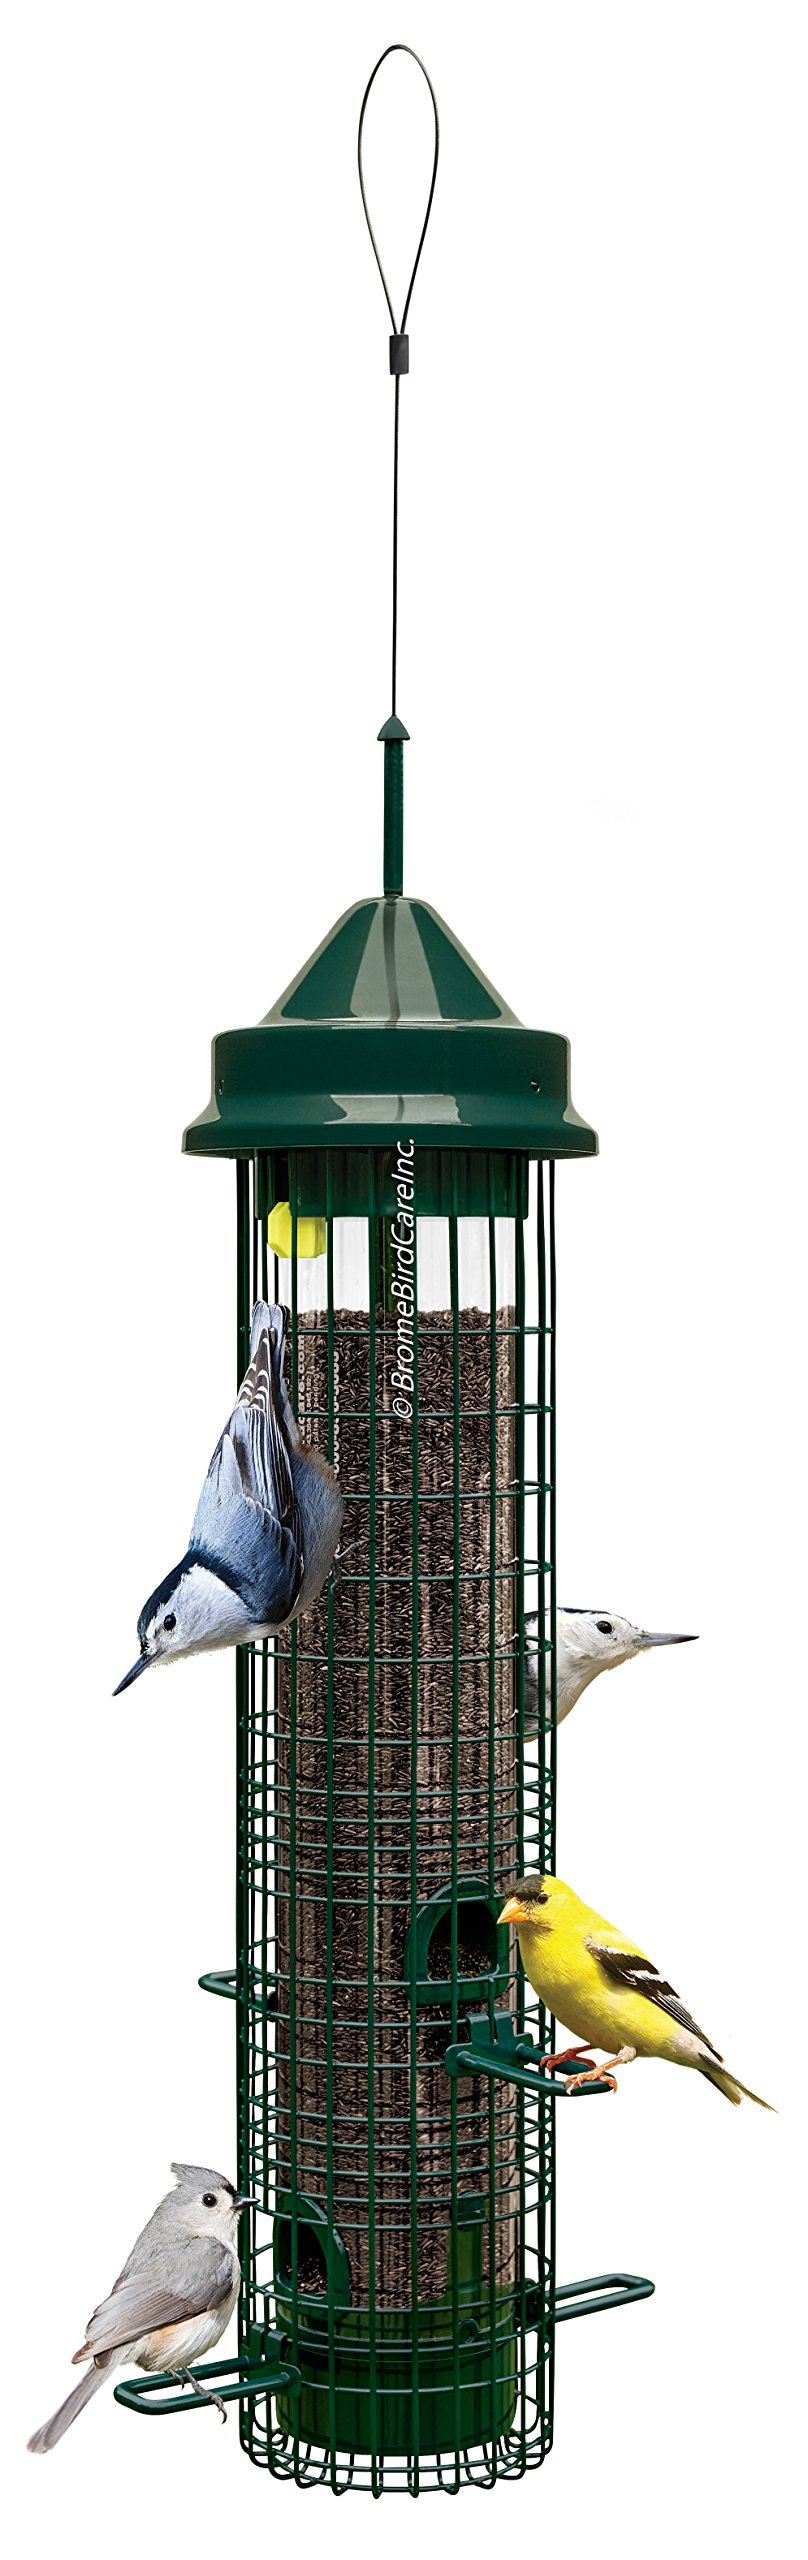 "Brome 1015 Squirrel Buster Classic 5.3""x5.3""x20.625"" Wild Bird Feeder with 4 Feeding Ports, 1.4qt Seed Capacity product image"